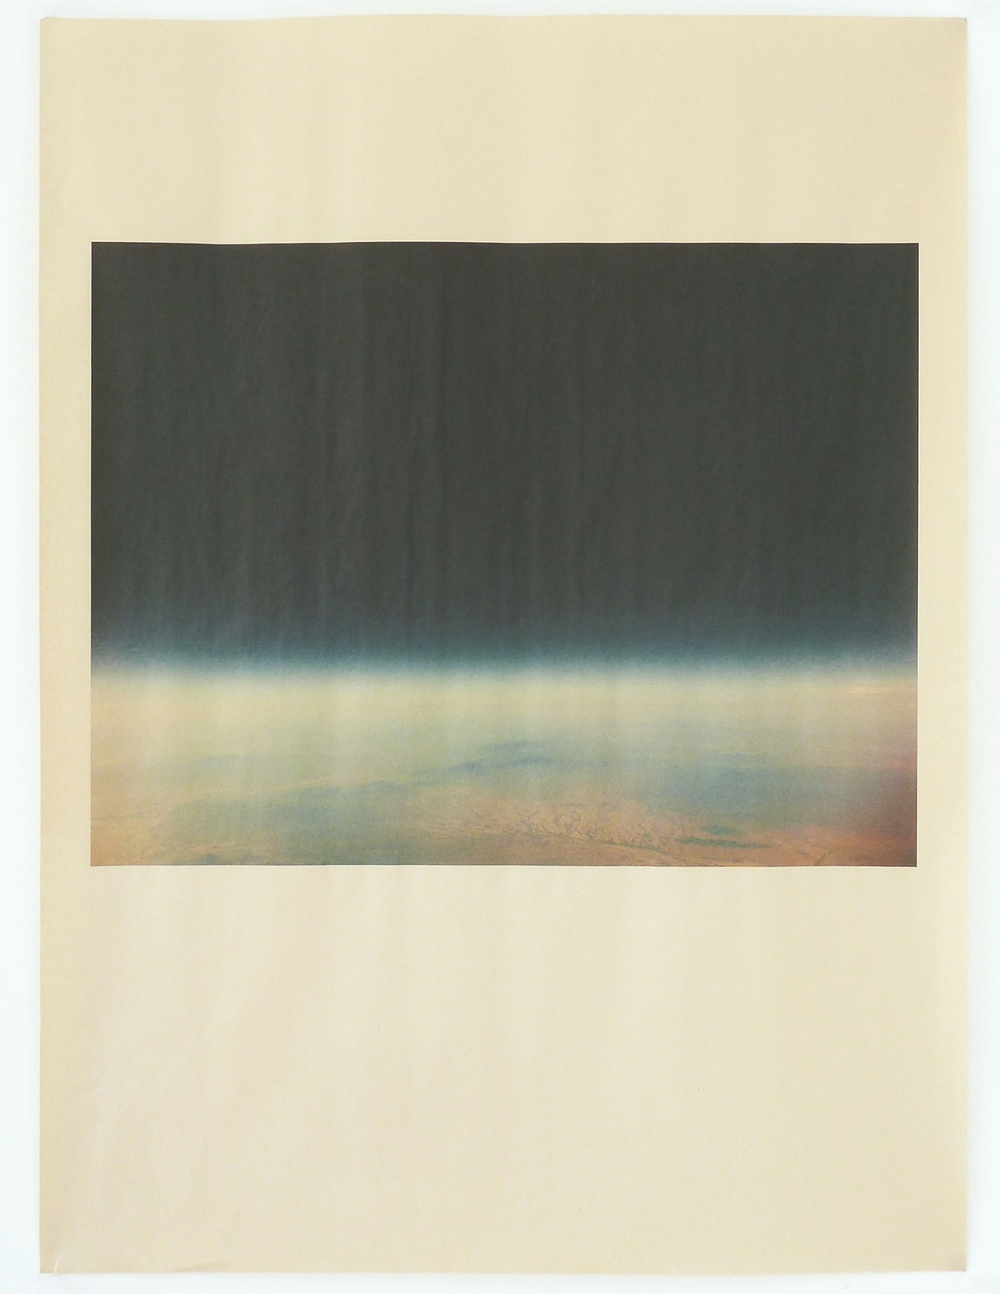 AZ_1164 , unique pigment print on newsprint, 18 x 24 inches, 2015